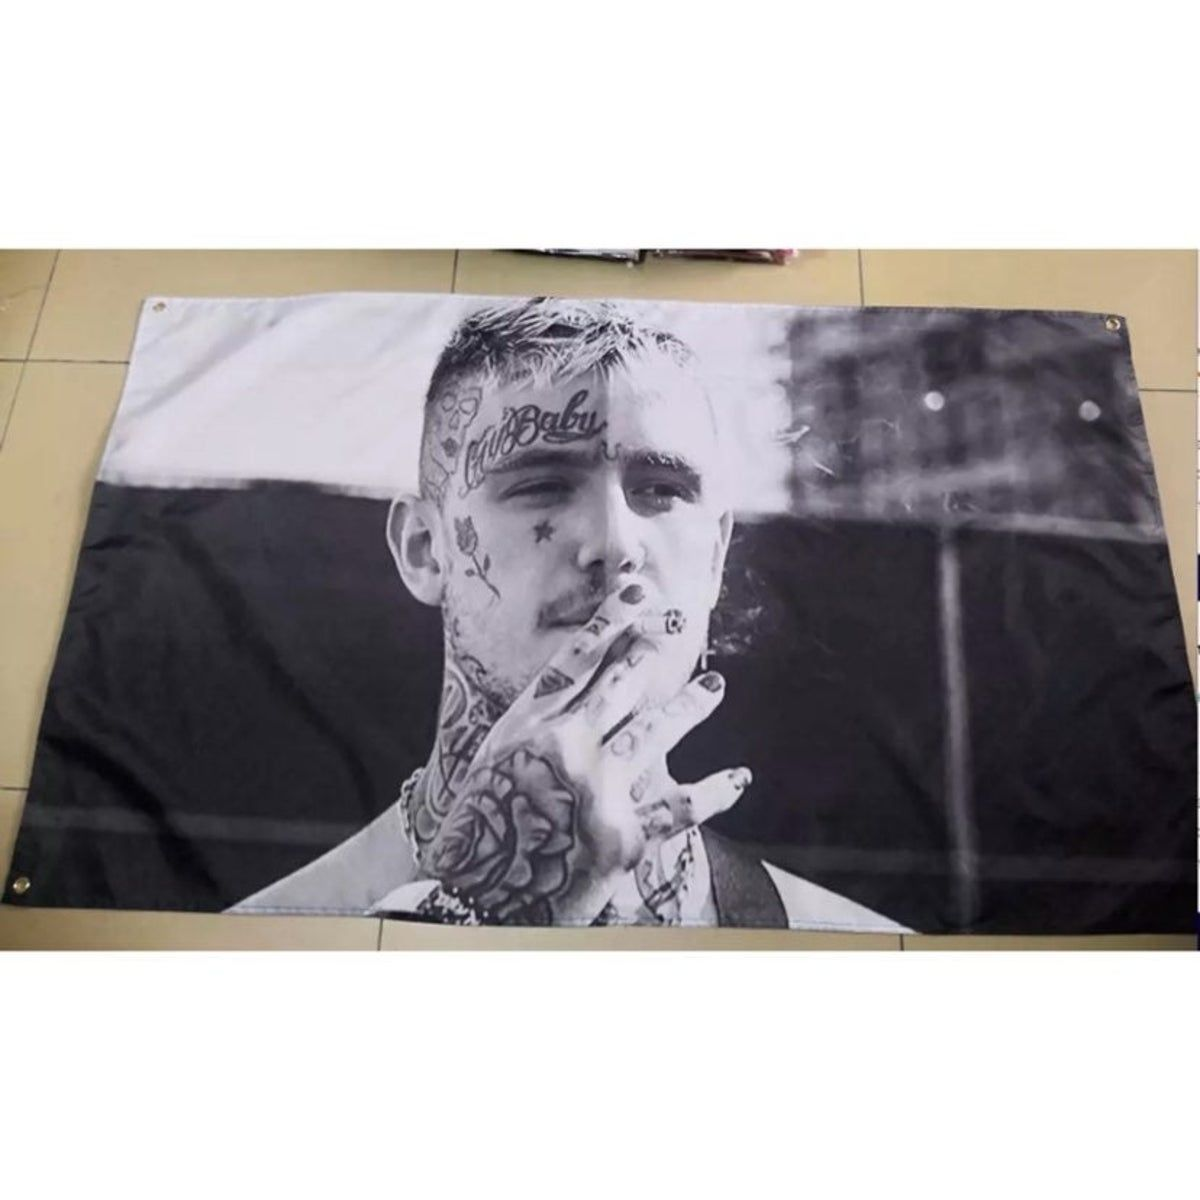 Lil Peep Rap Life Is Beautiful Pink Flag Banner Tapestry 3x5 Feet College Dorm